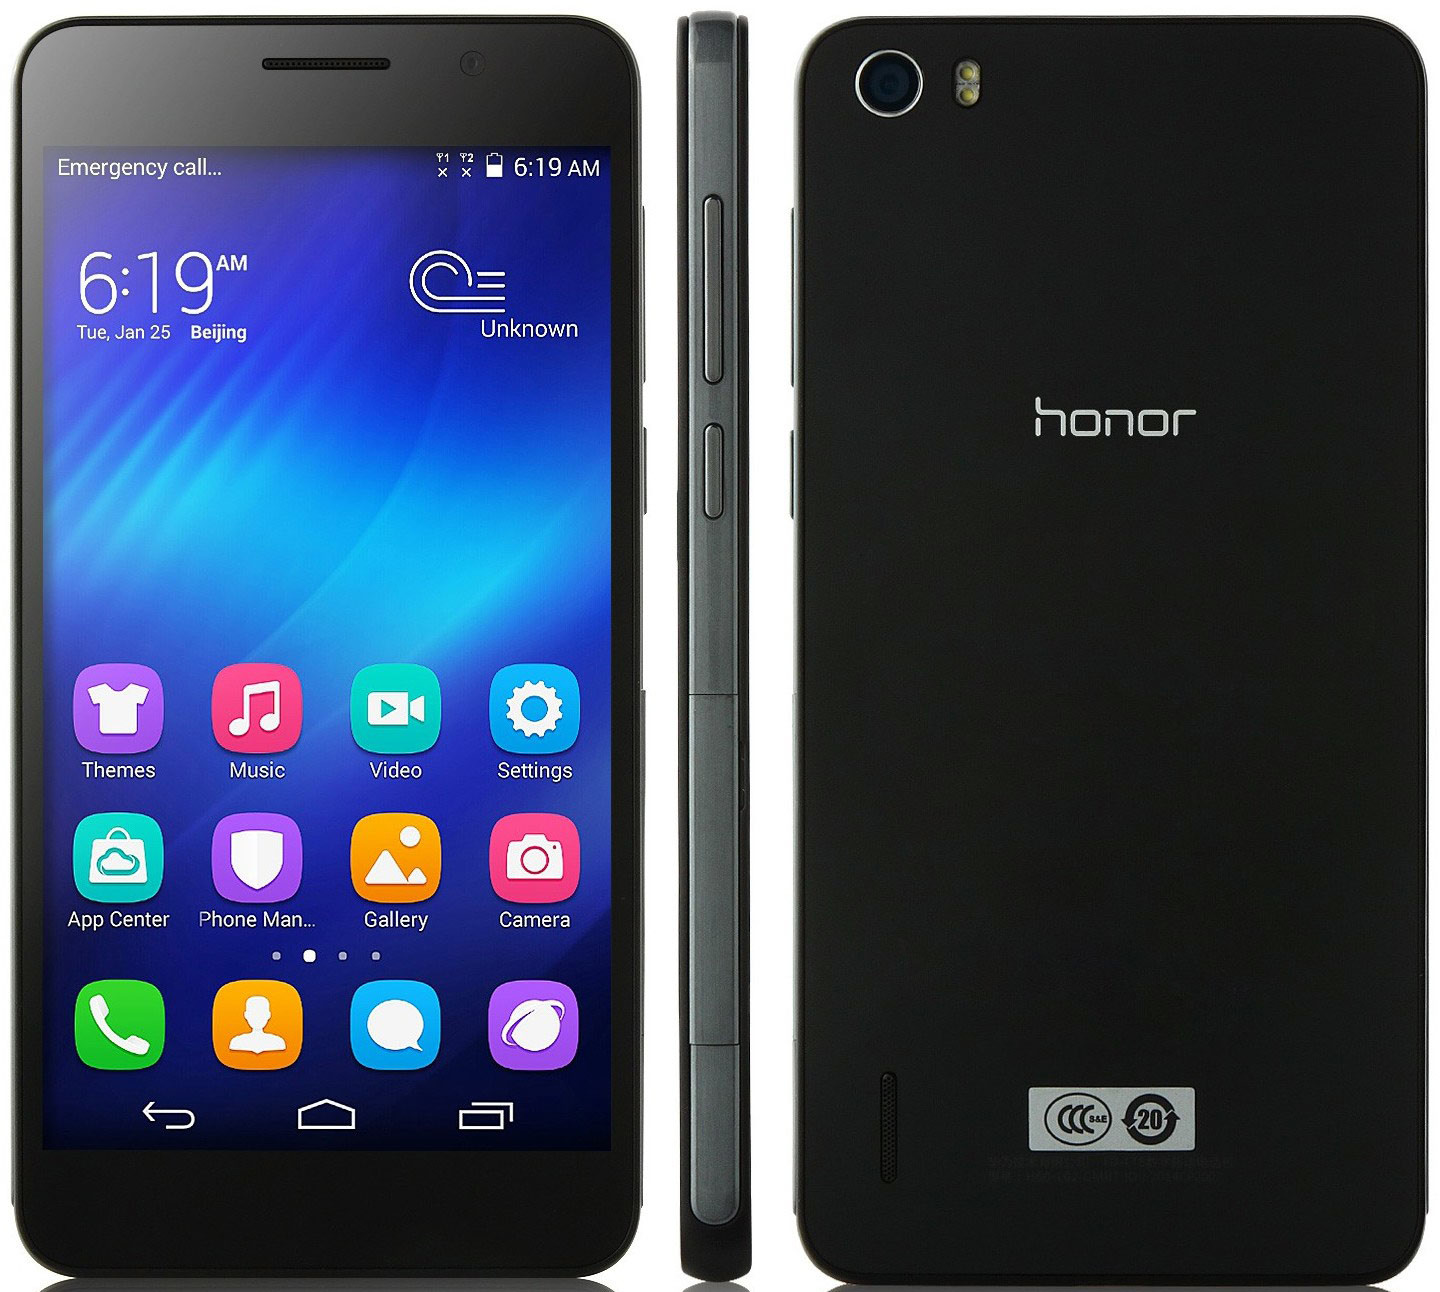 huawei honor 6 android 5.1